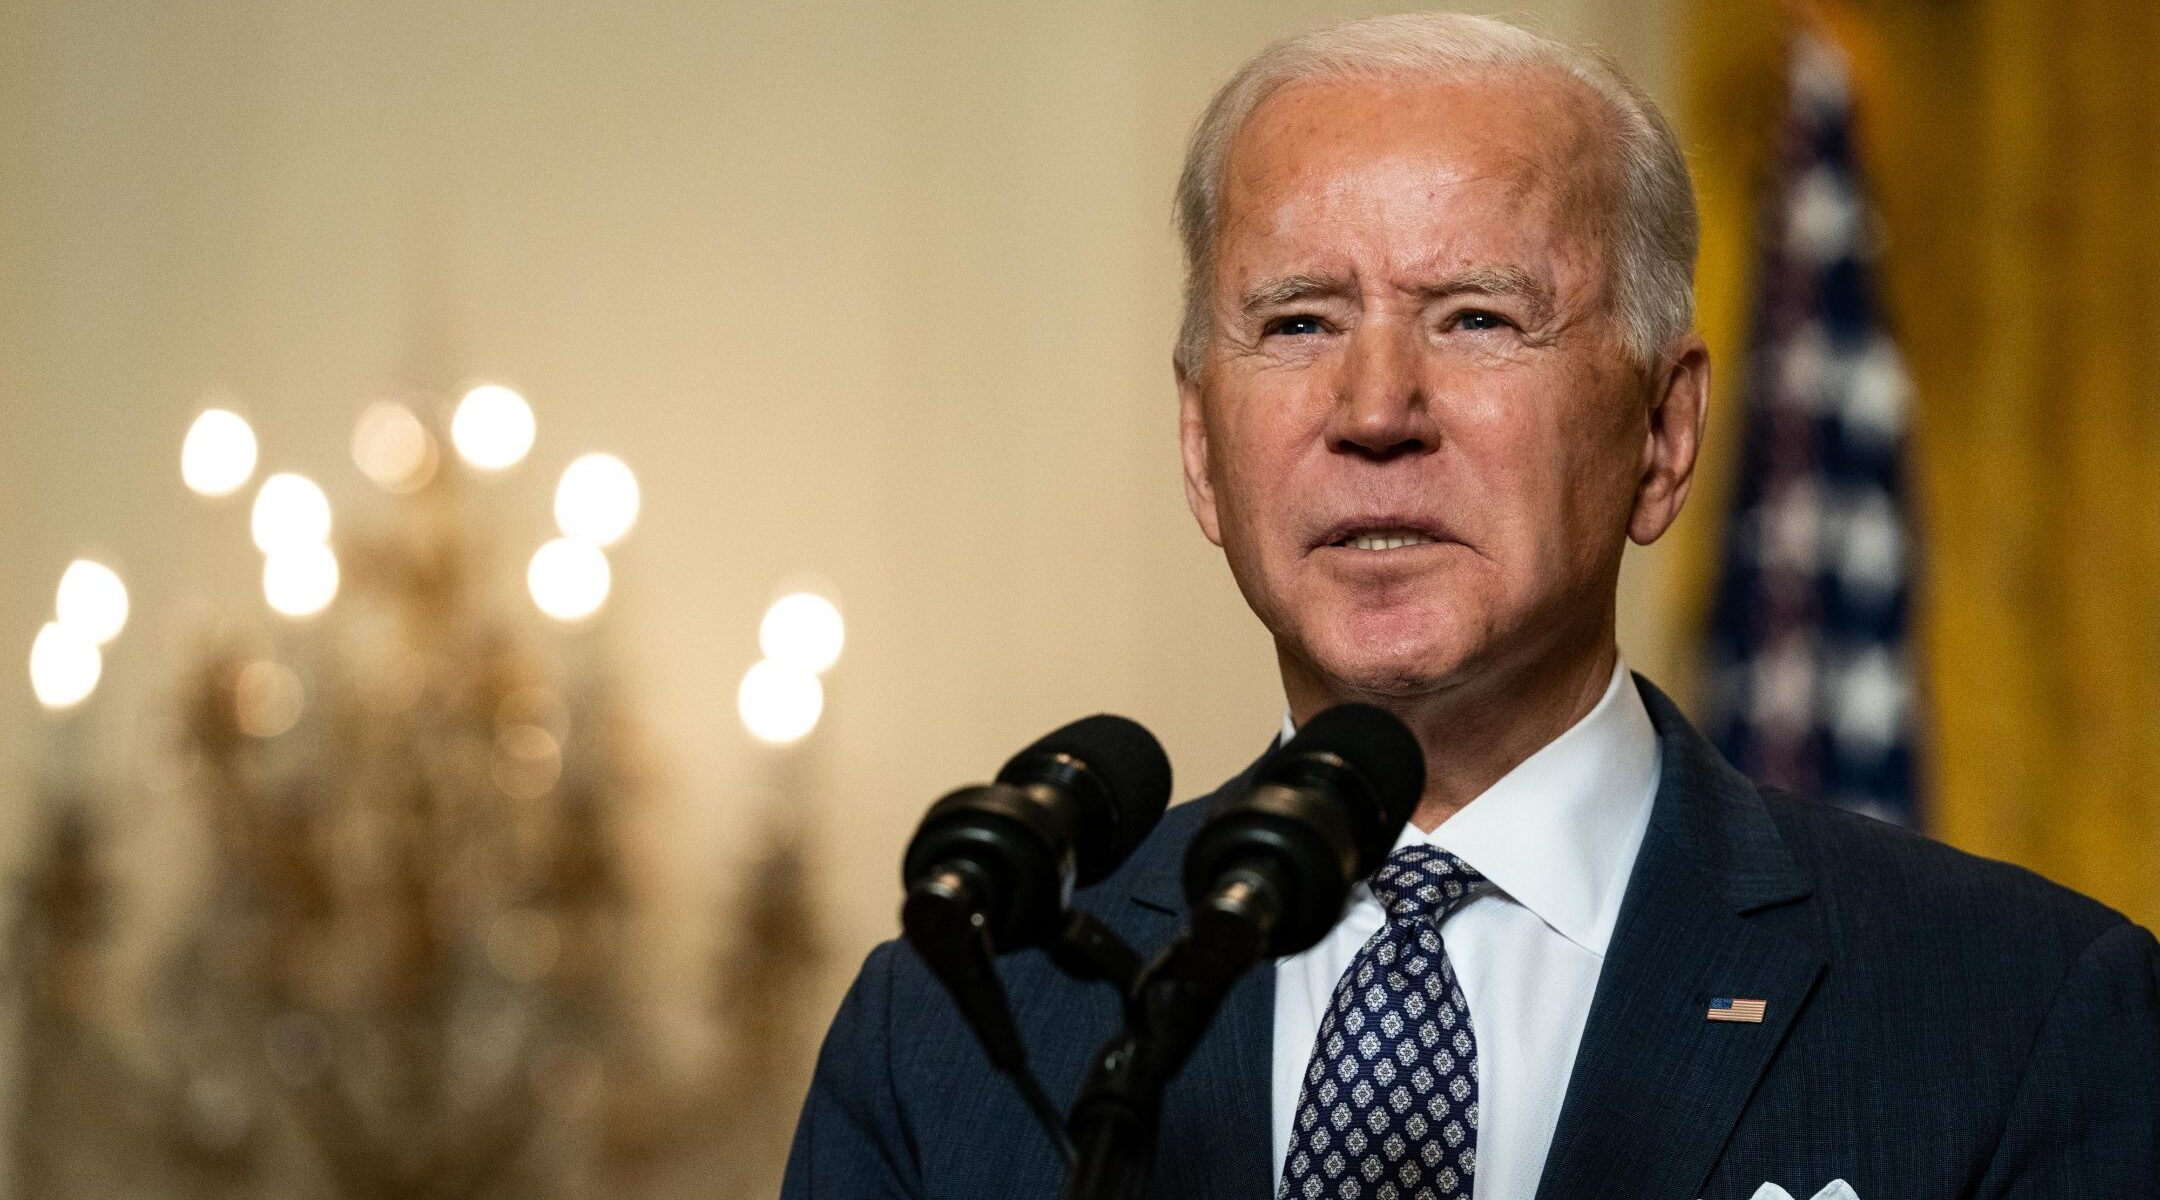 President Joe Biden, speaking from the White House at a virtual event hosted by the Munich Security Conference, Feb. 19, 2021. (Photo/JTA-Anna Moneymaker-Pool-Getty Images)